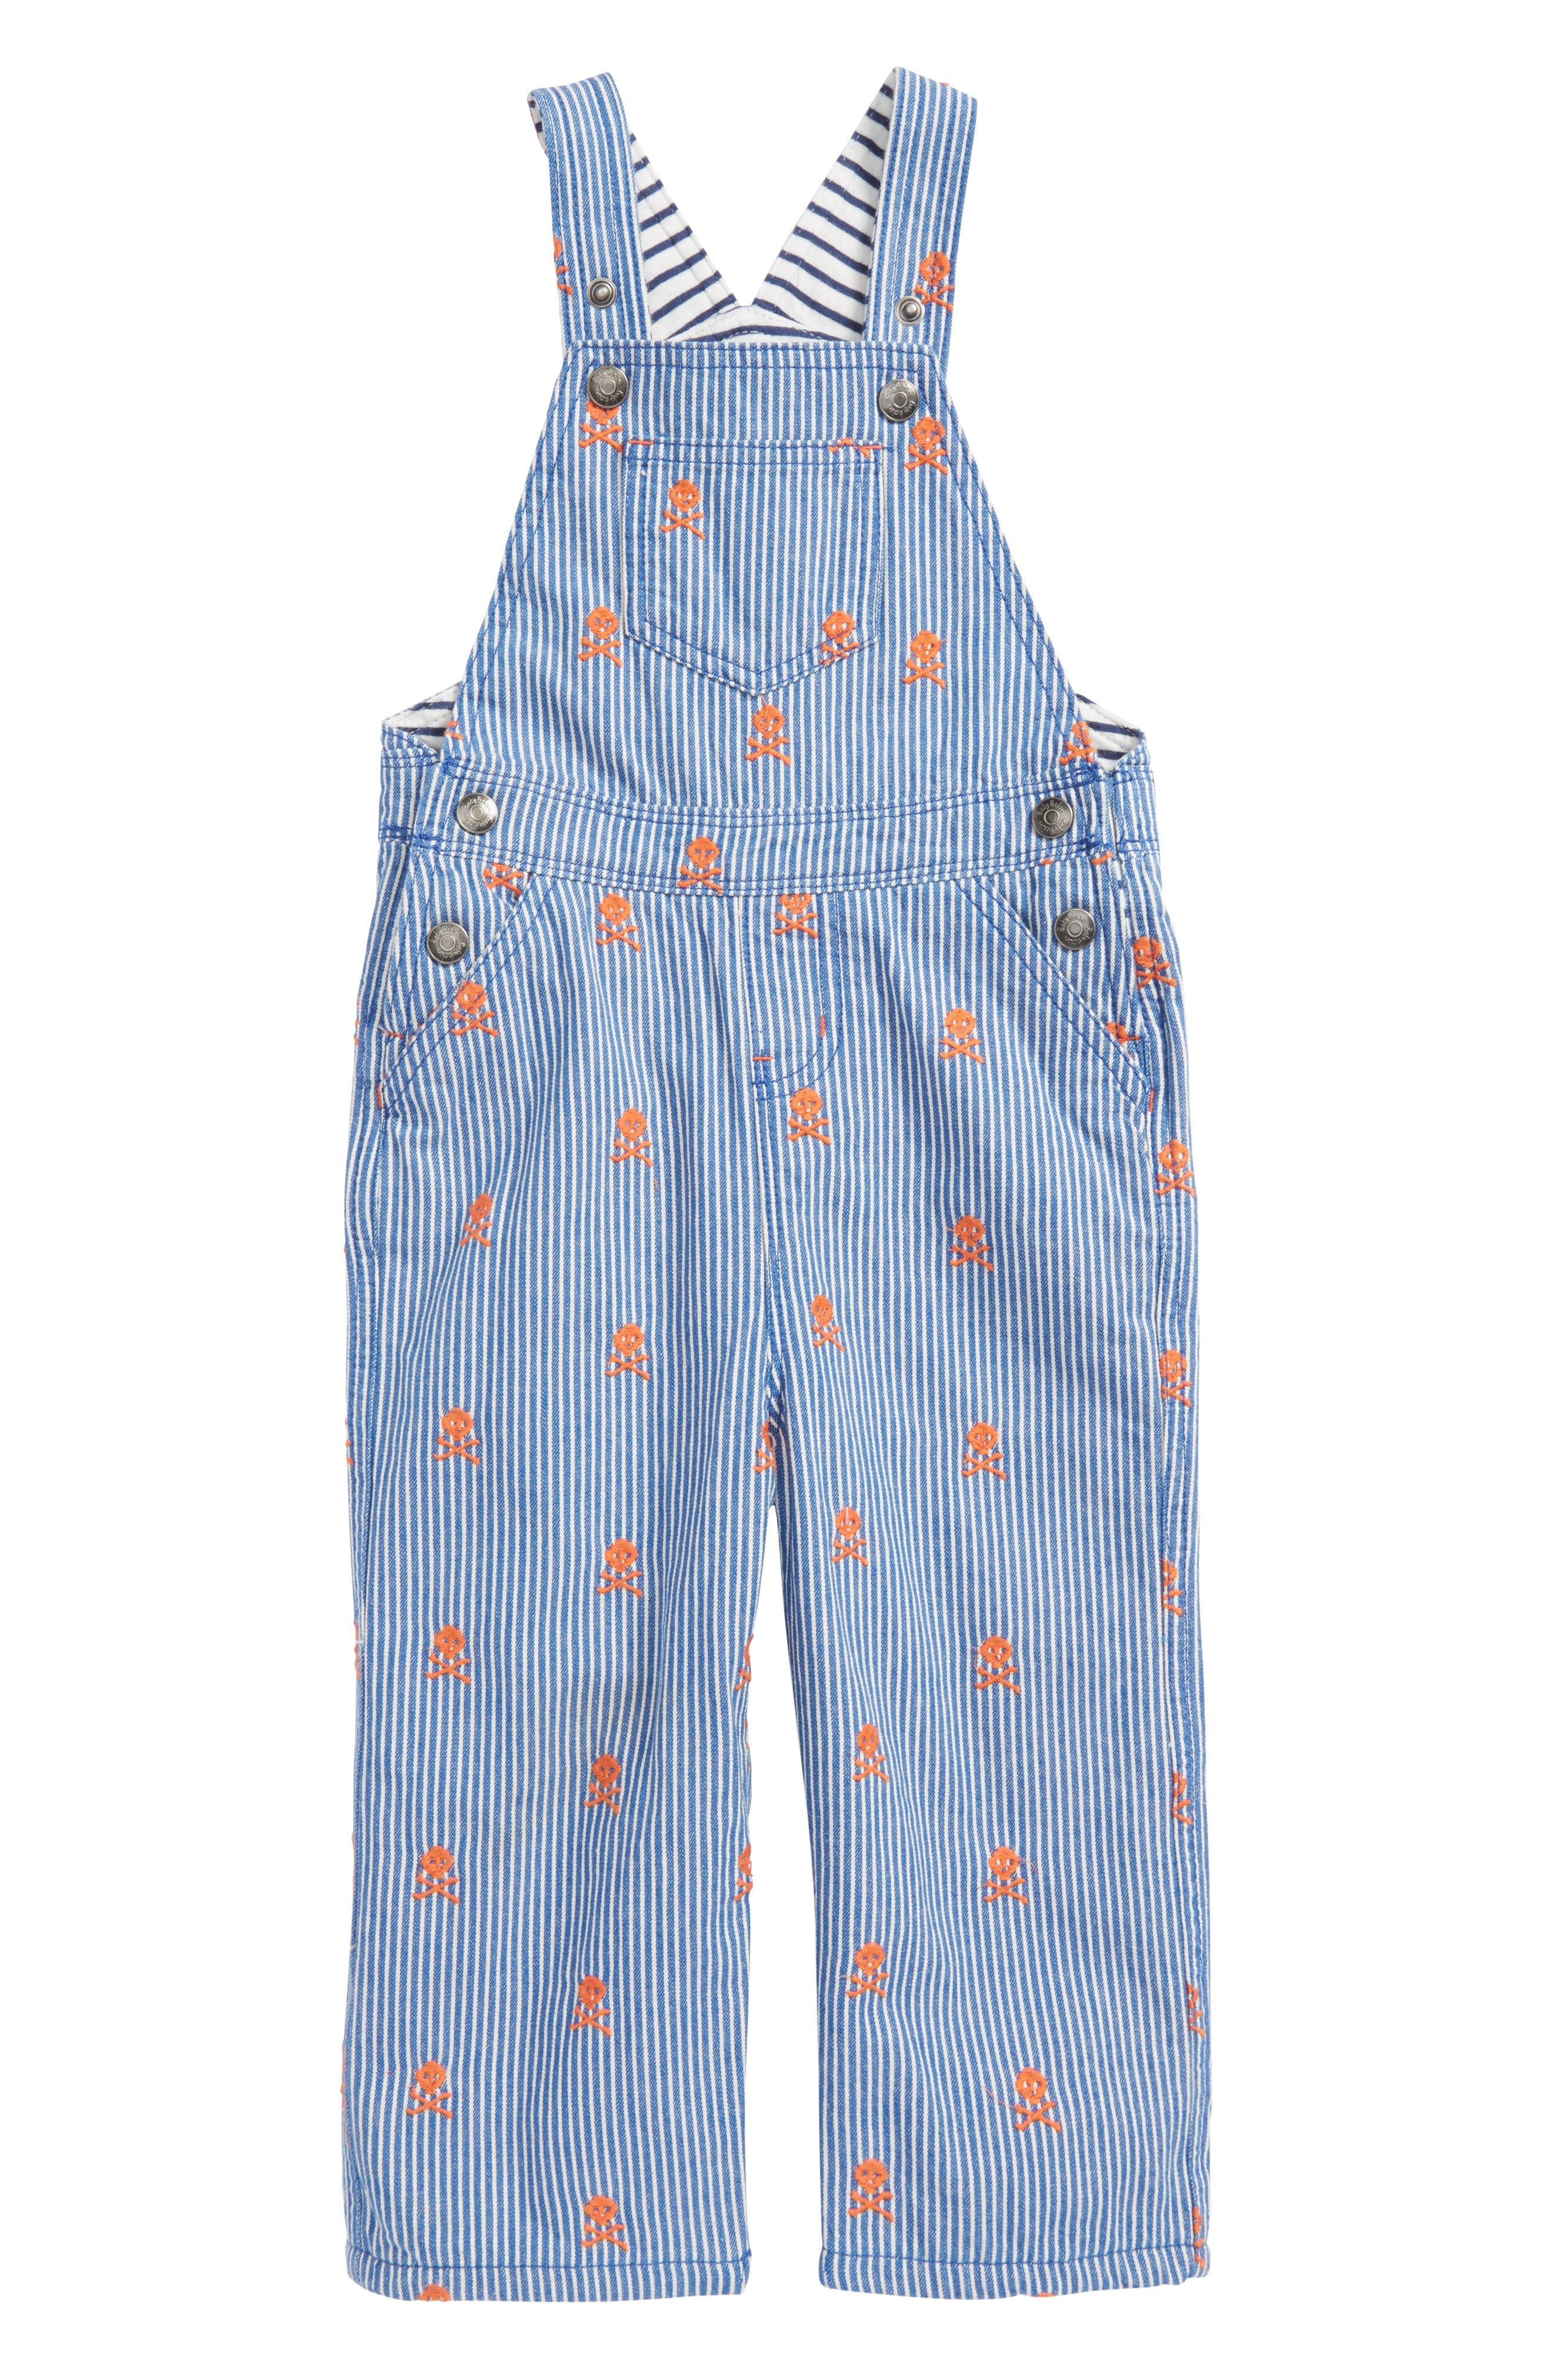 Mini Boden Classic Dungaree Overalls (Baby Boys & Toddler Boys)